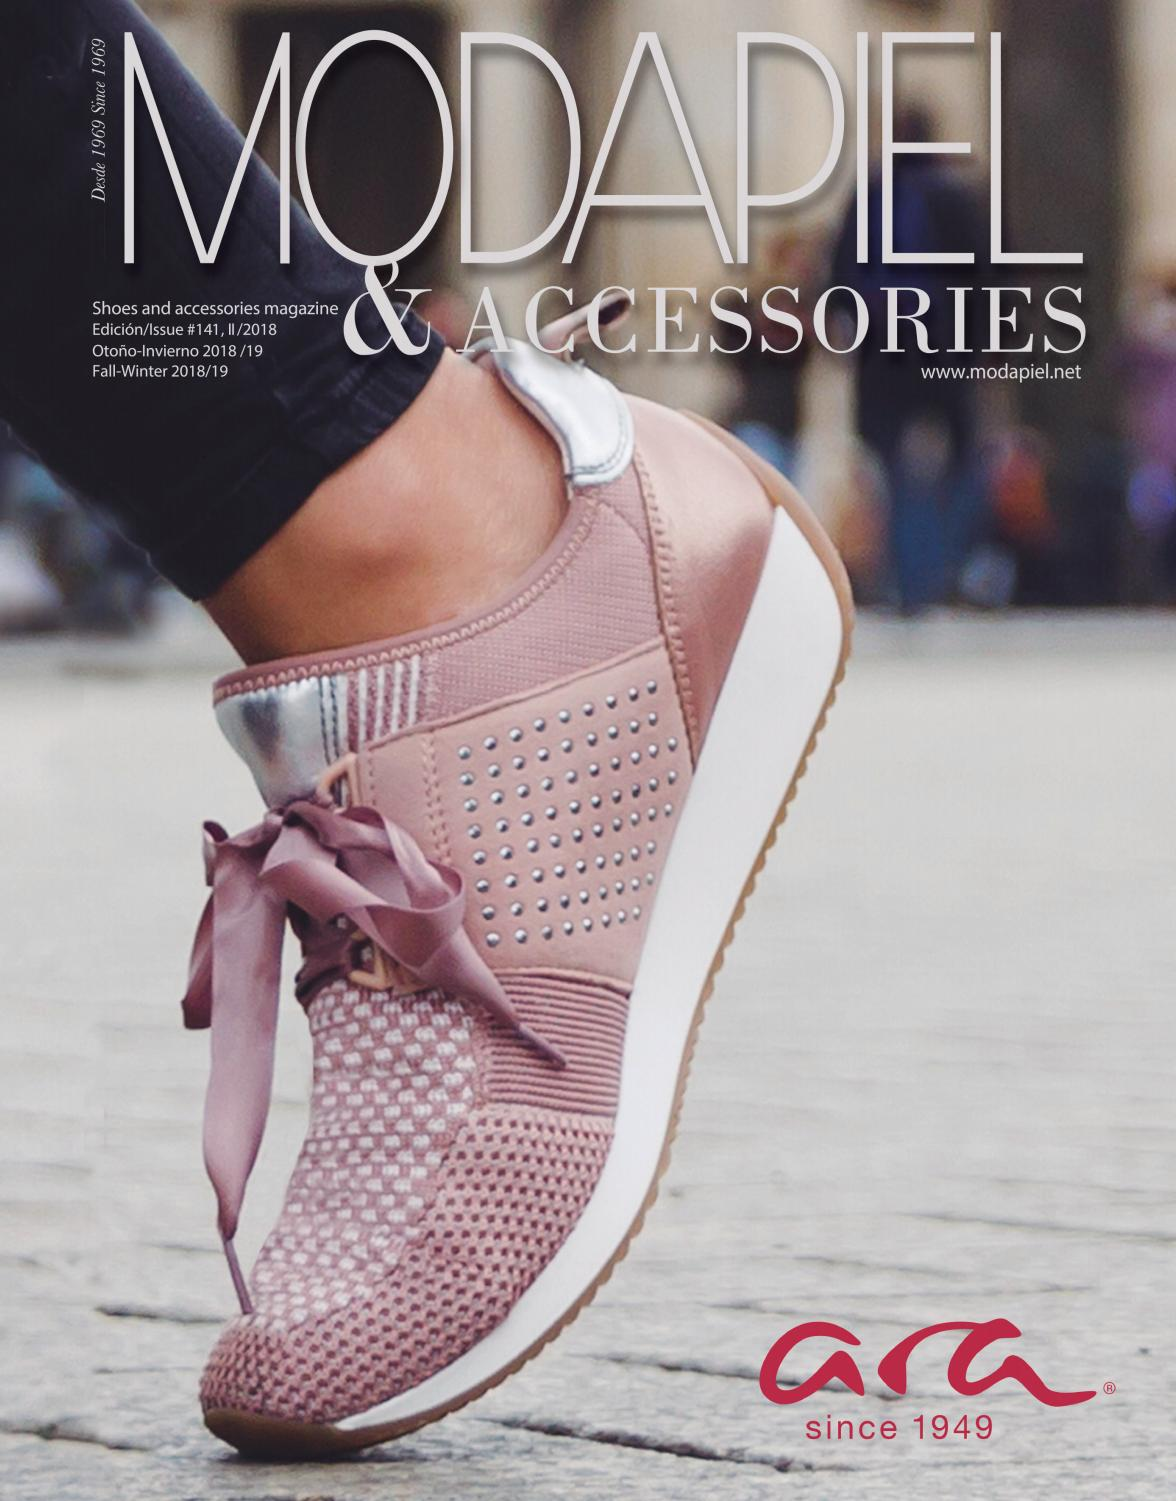 Modapiel & Accessories 141 Shoes and accessories magazine by